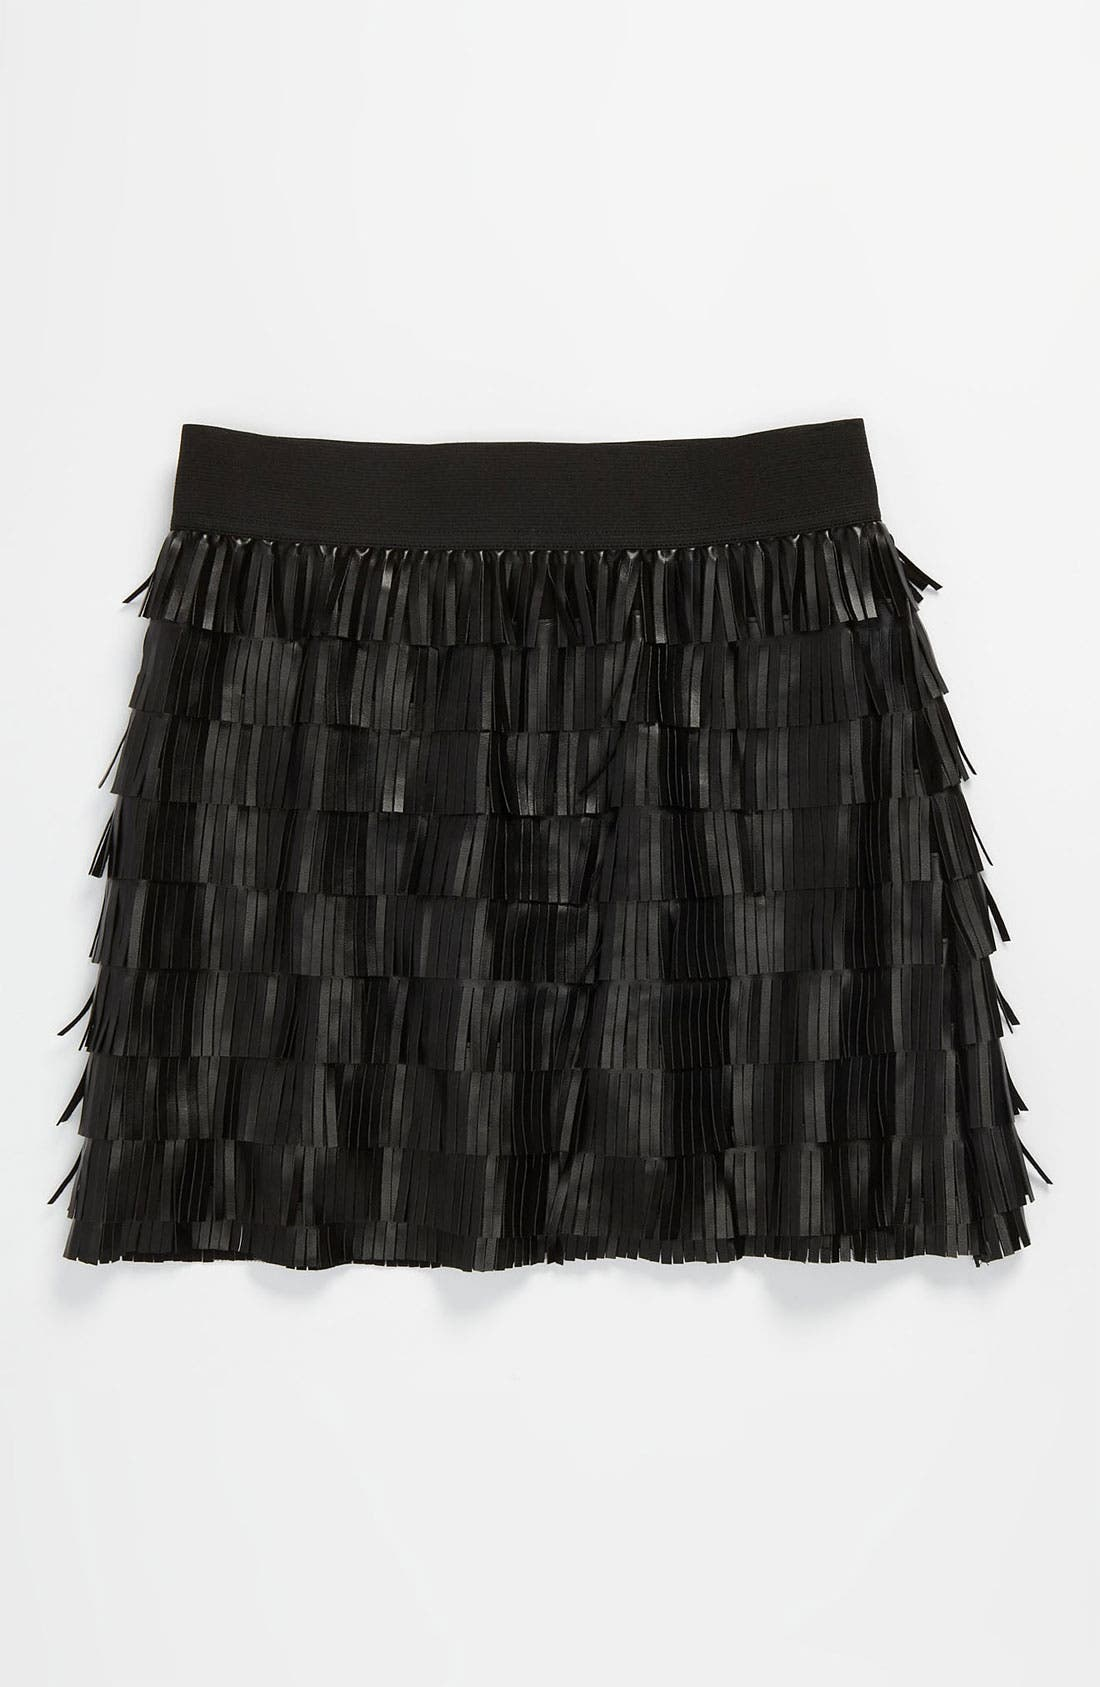 Alternate Image 1 Selected - Little Mass Faux Leather Skirt (Big Girls)